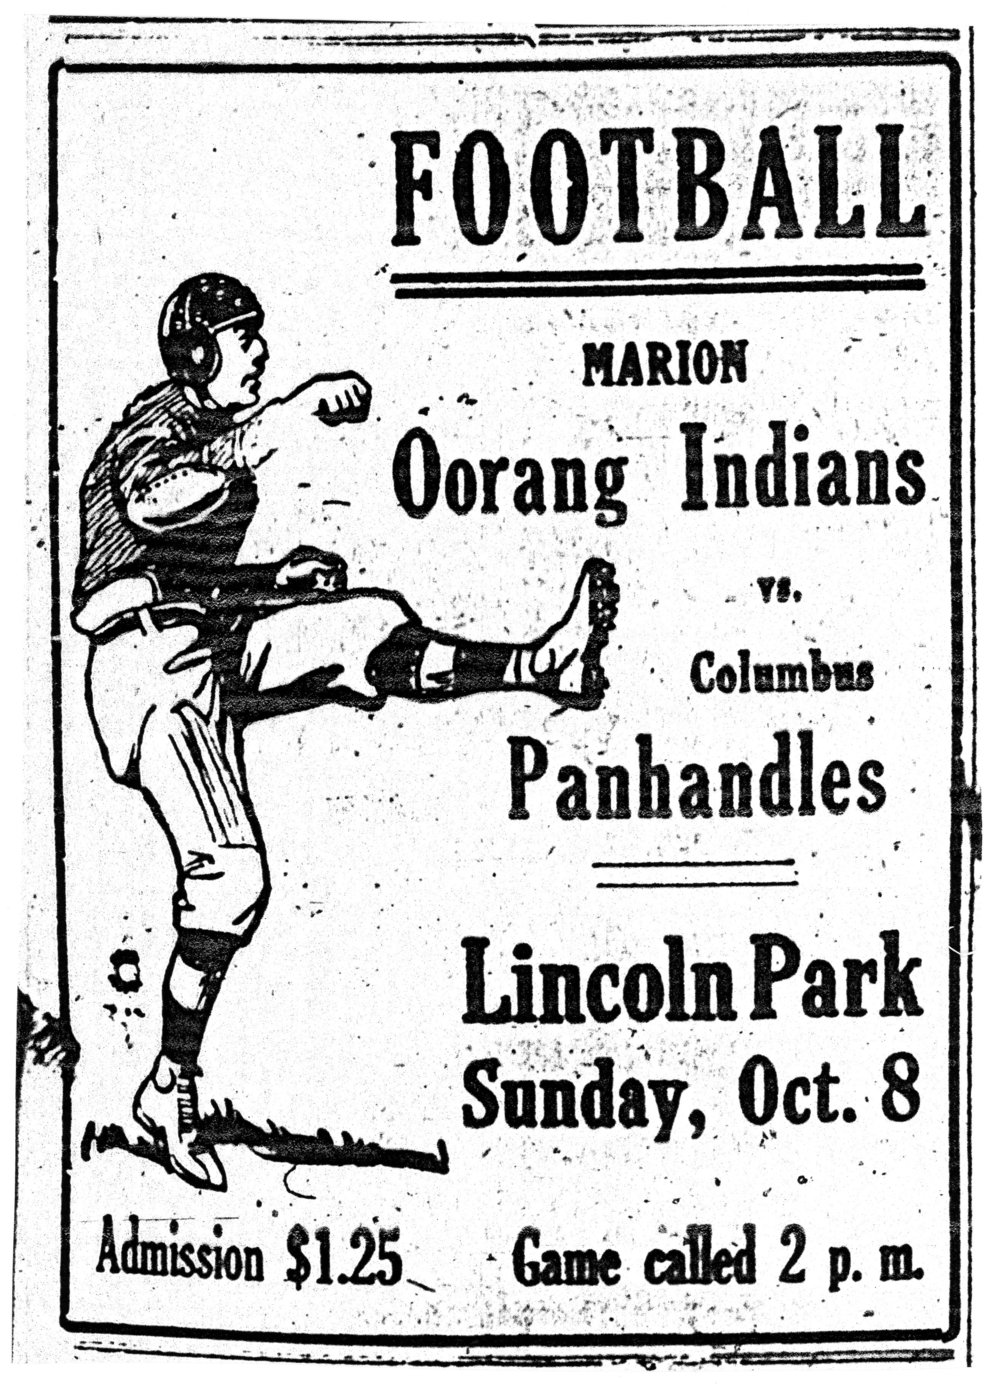 1922-oorang-indians-vs-columbus-panhandles-football-ad-at-lincoln-park.jpg